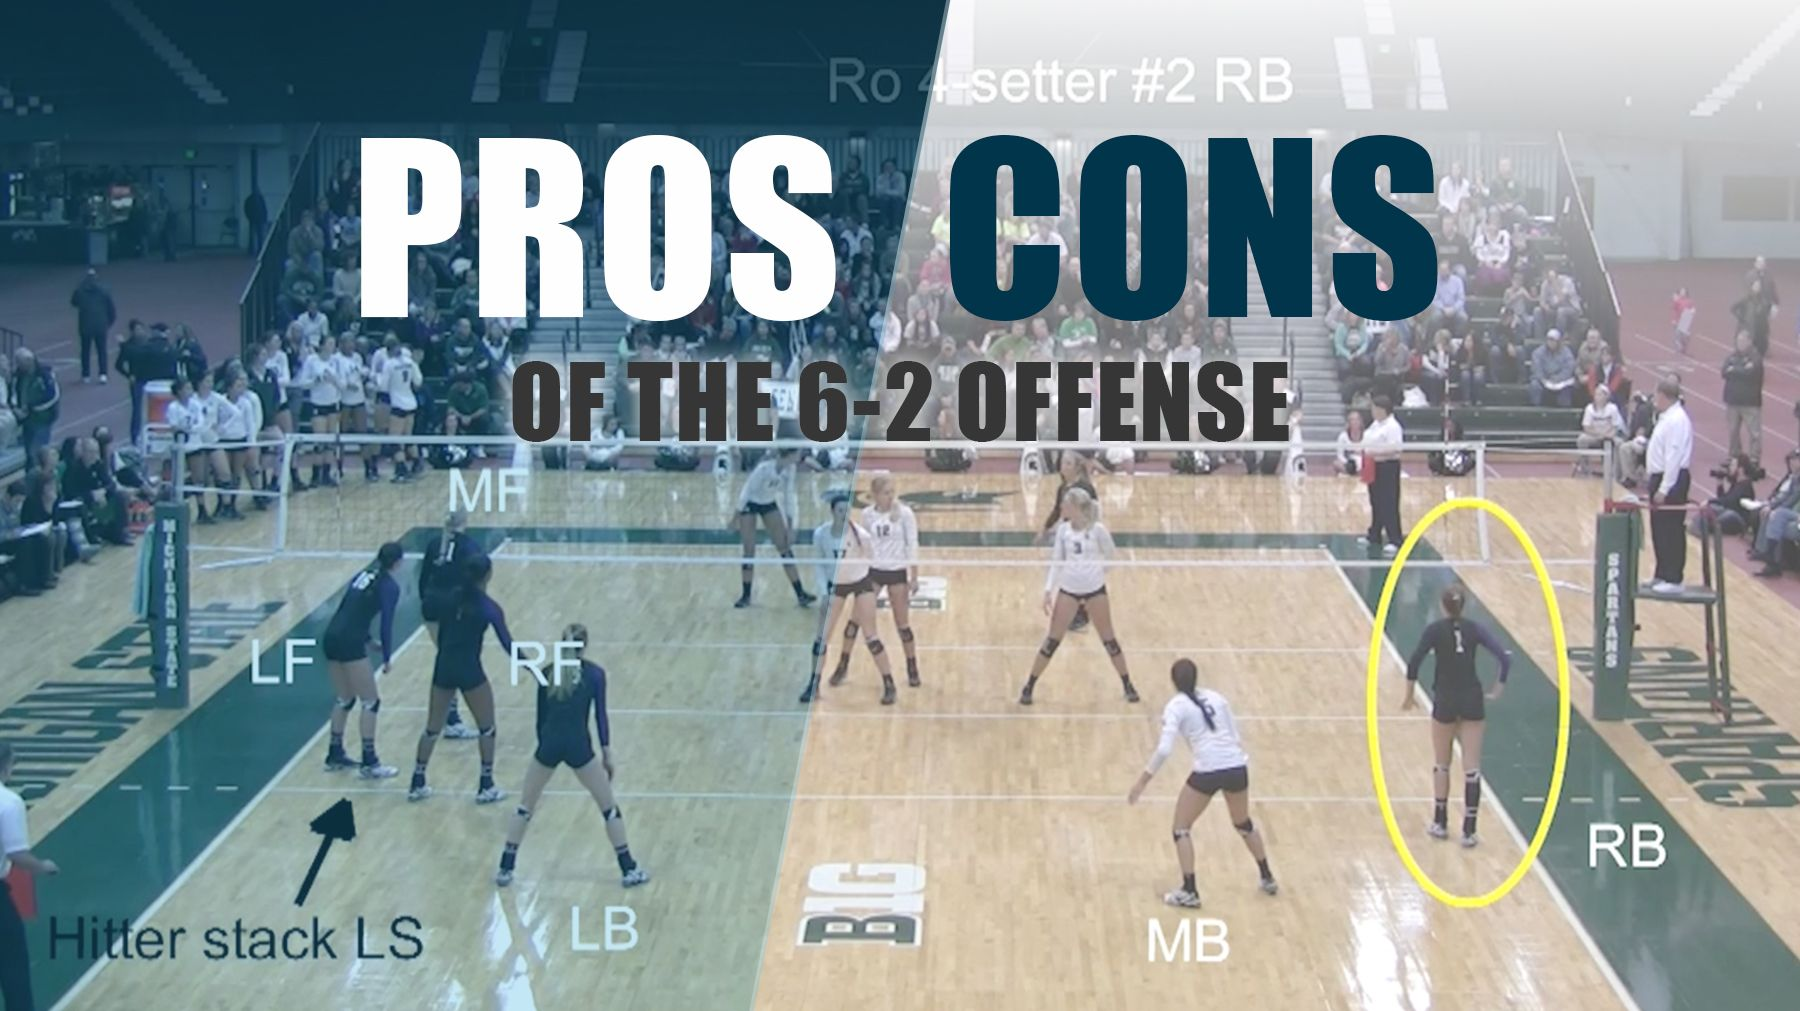 Jim Stone Pros And Cons Of The 6 2 Offense The Art Of Coaching Volleyball Coaching Volleyball Volleyball Drills Volleyball